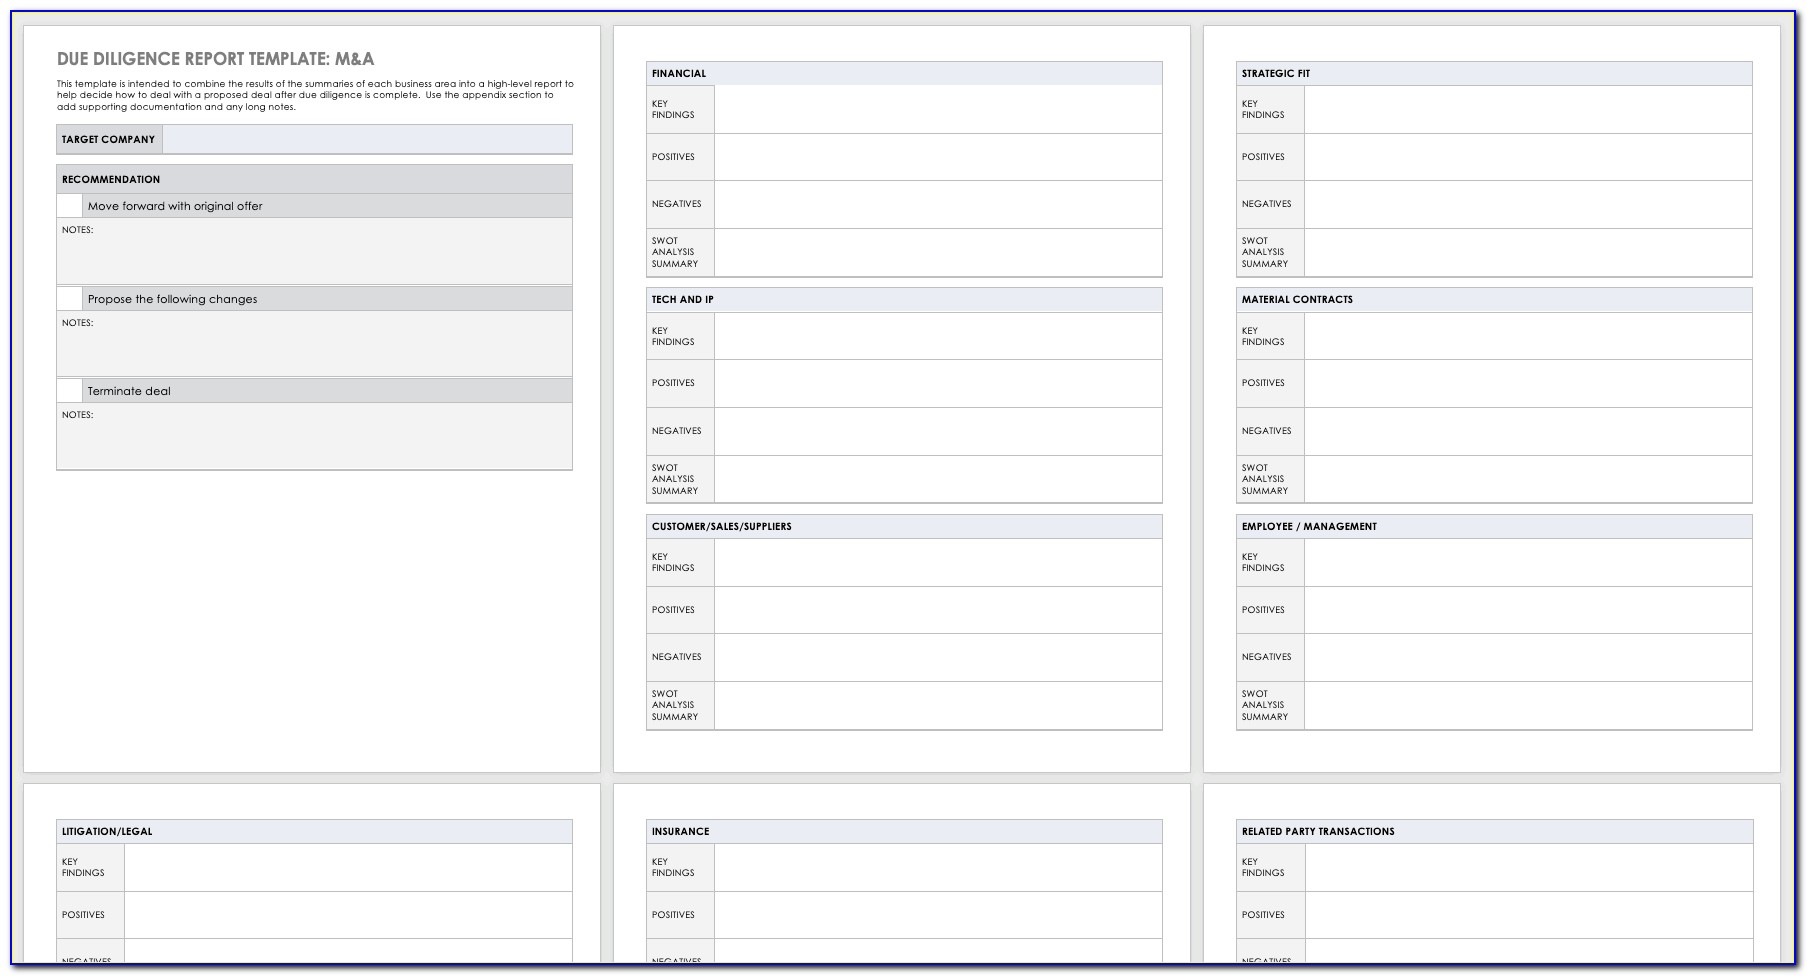 Due Diligence Report Format In Word